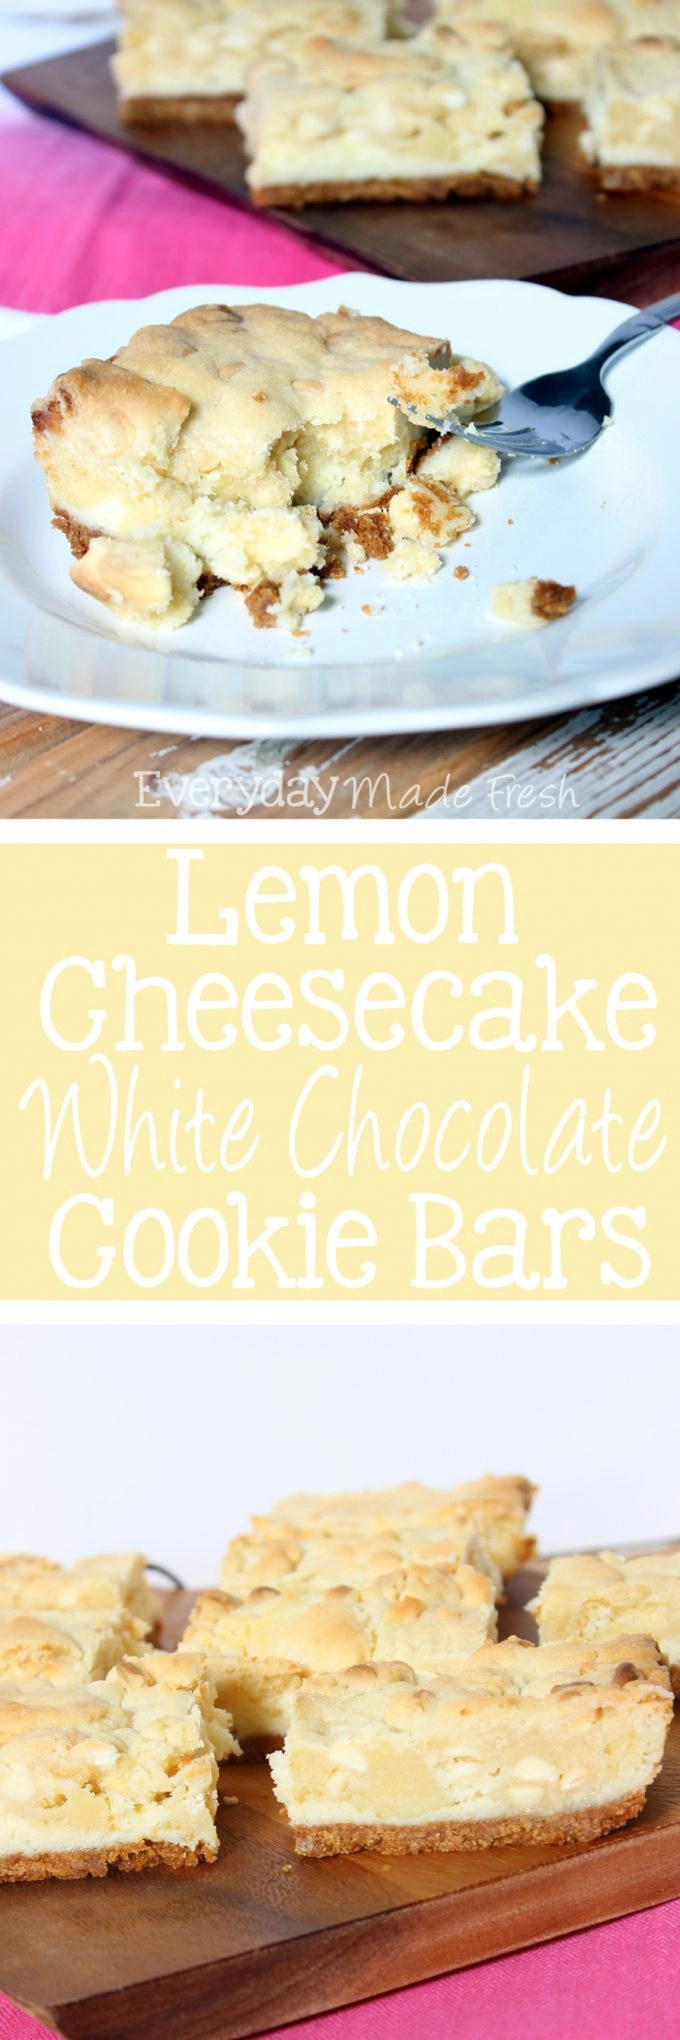 Lemon Cheesecake White Chocolate Cookie Bars are loaded with flavor! It's a marriage between a sweet and tangy lemon cheesecake and a chewy lemon white chocolate cookie. These were made for spring! | EverydayMadeFresh.com